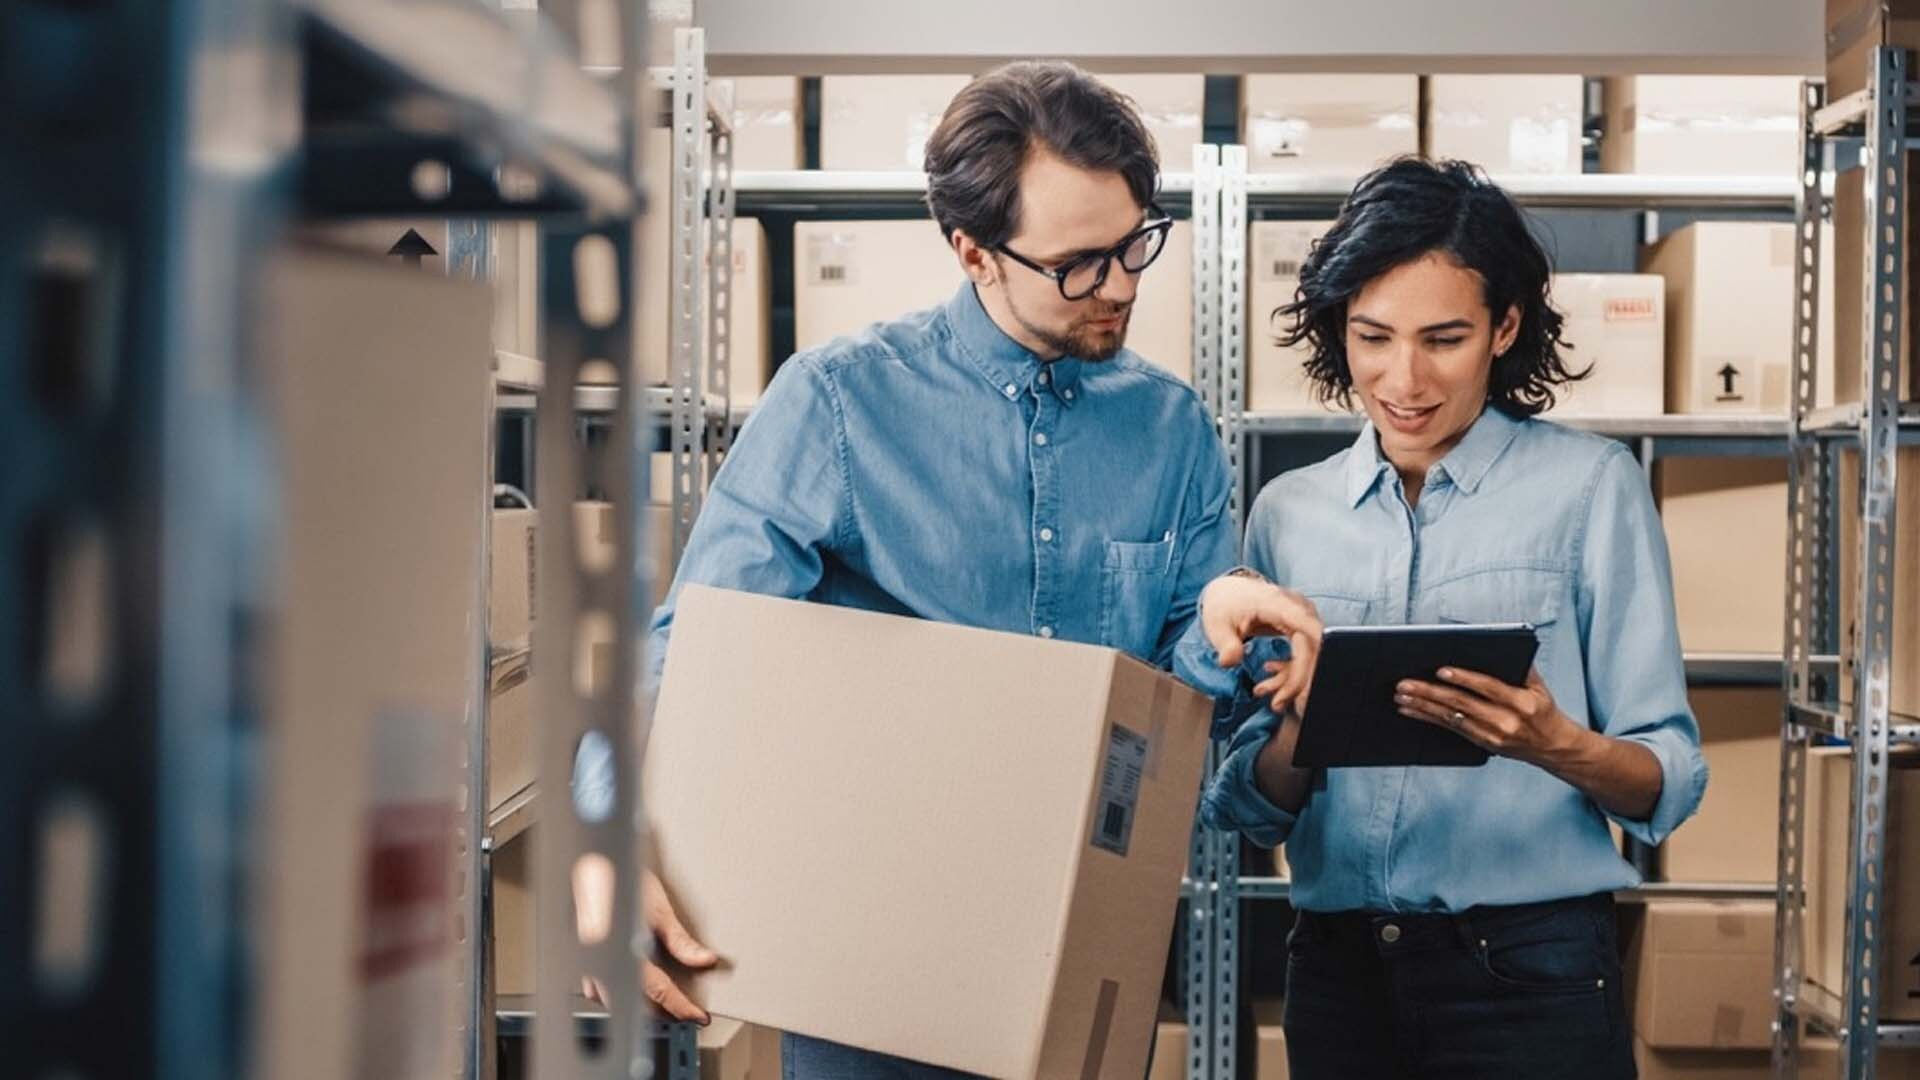 2 people standing in a warehouse with a tablet